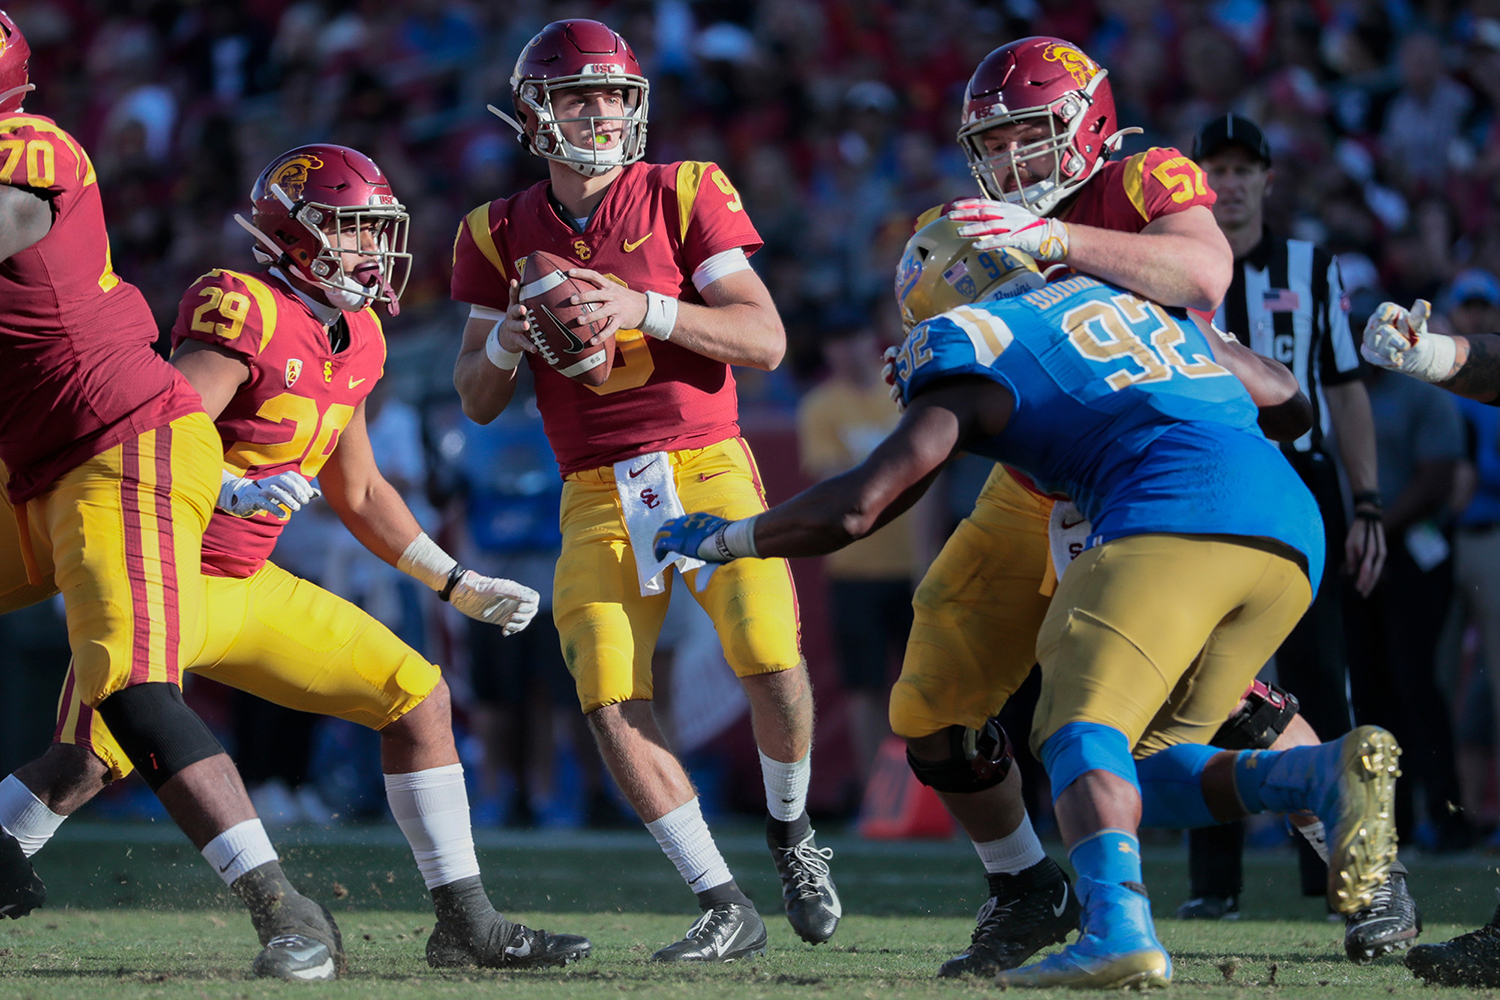 USC quarterback Kedon Slovis (9) drops back to pass against UCLA during the third quarter at the Los Angeles Memorial Coliseum on Saturday, Nov. 23, 2019, in Los Angeles. USC won, 52-35. (Robert Gauthier/Los Angeles Times/TNS)